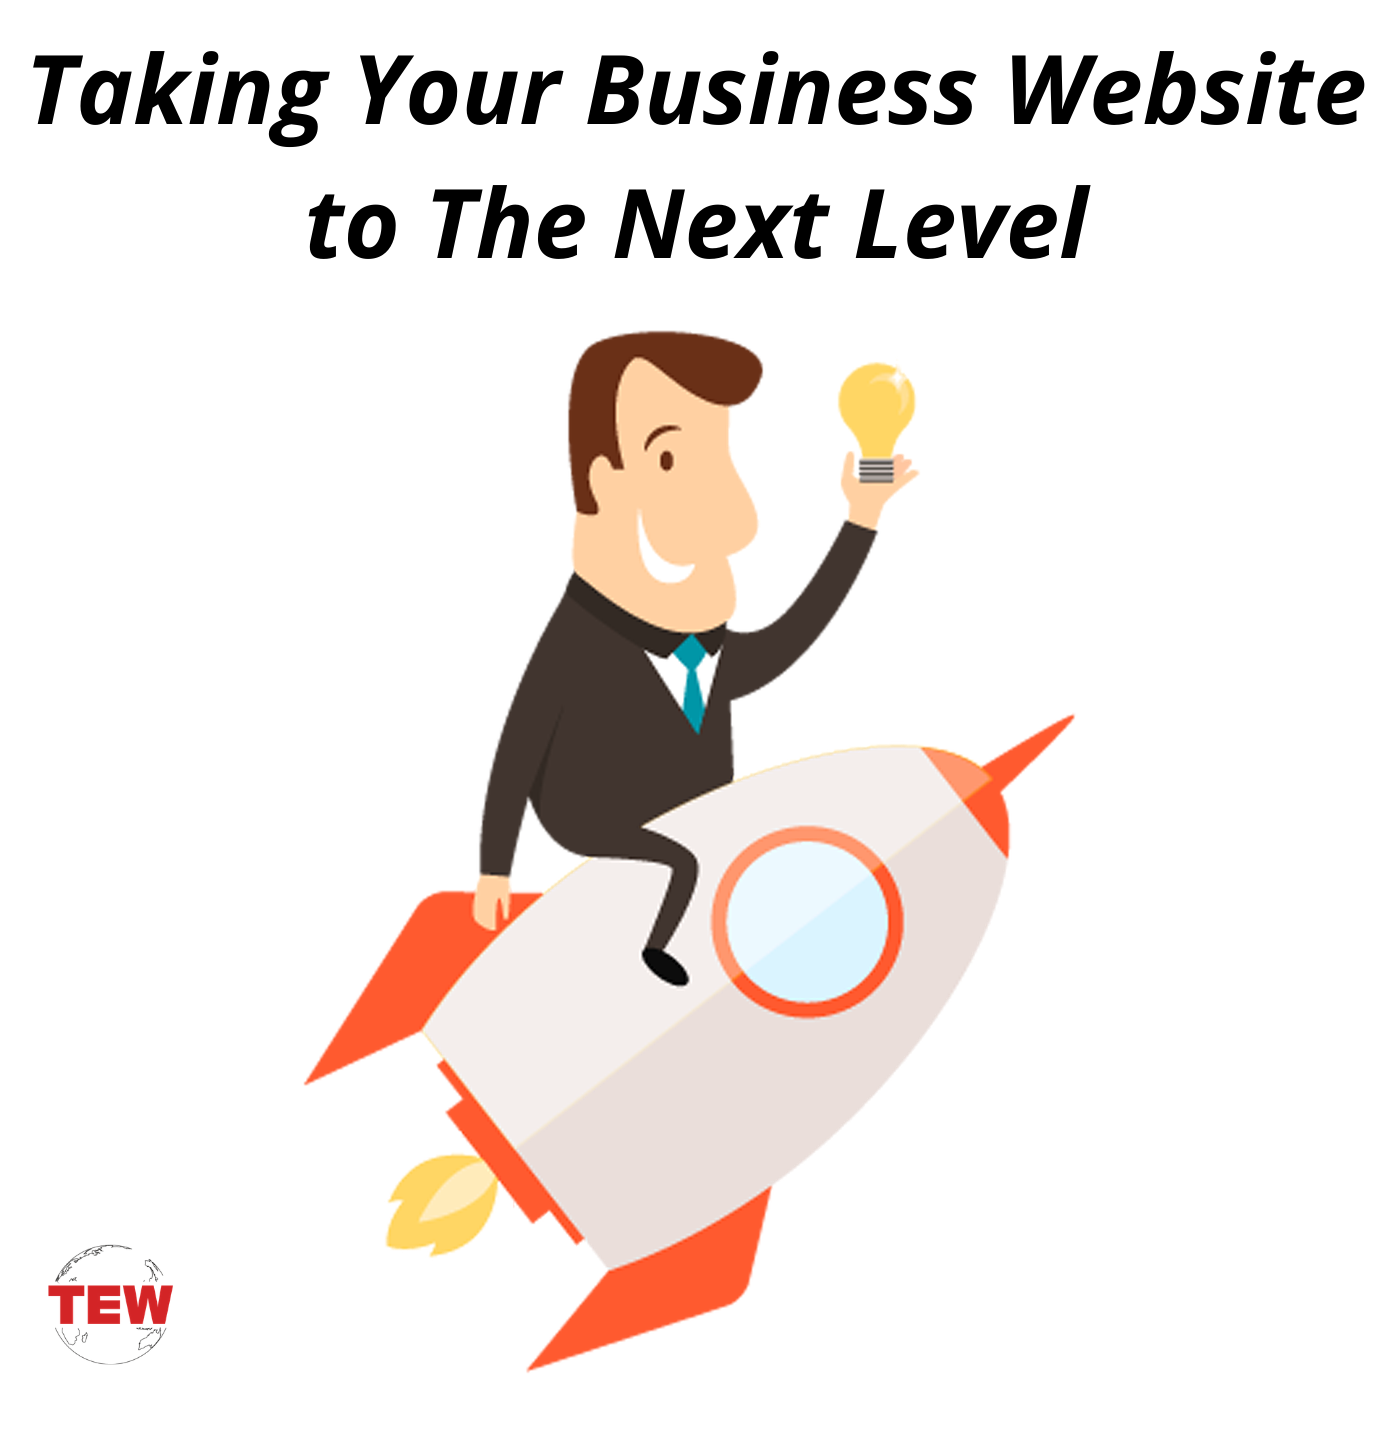 Taking Your Business Website to The Next Level